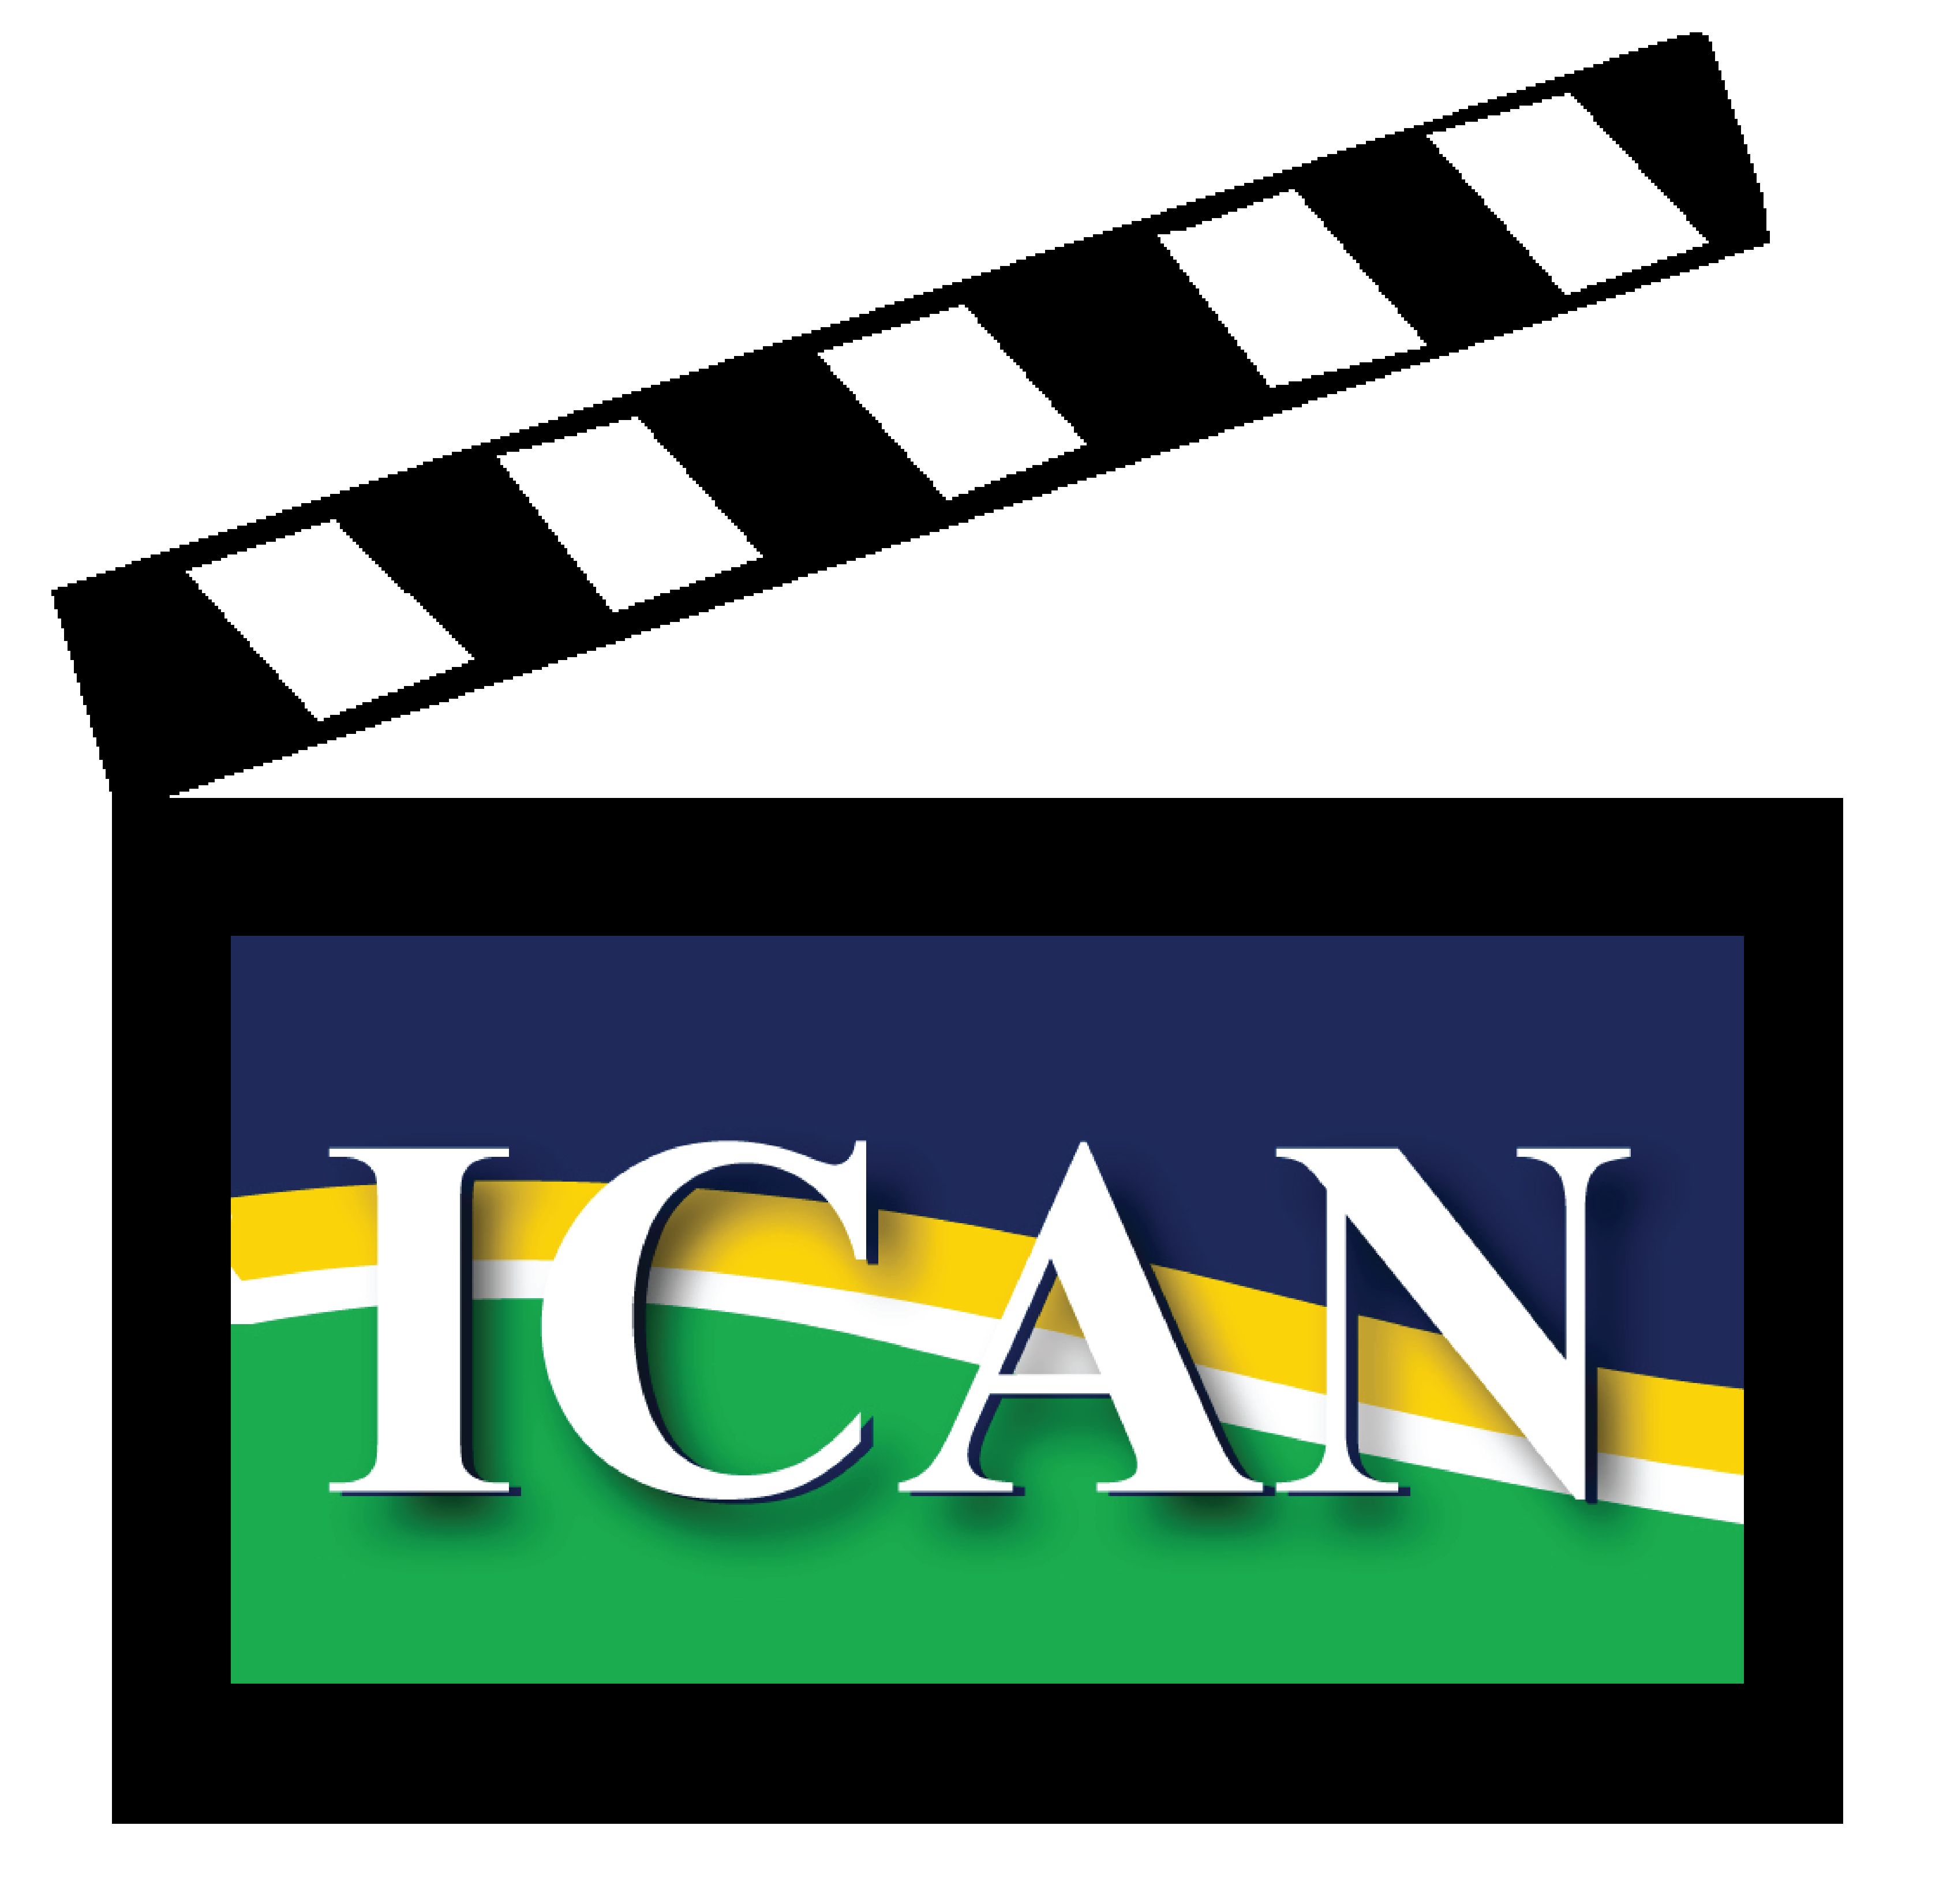 Voting clipart vote buying. Ican inc whether you